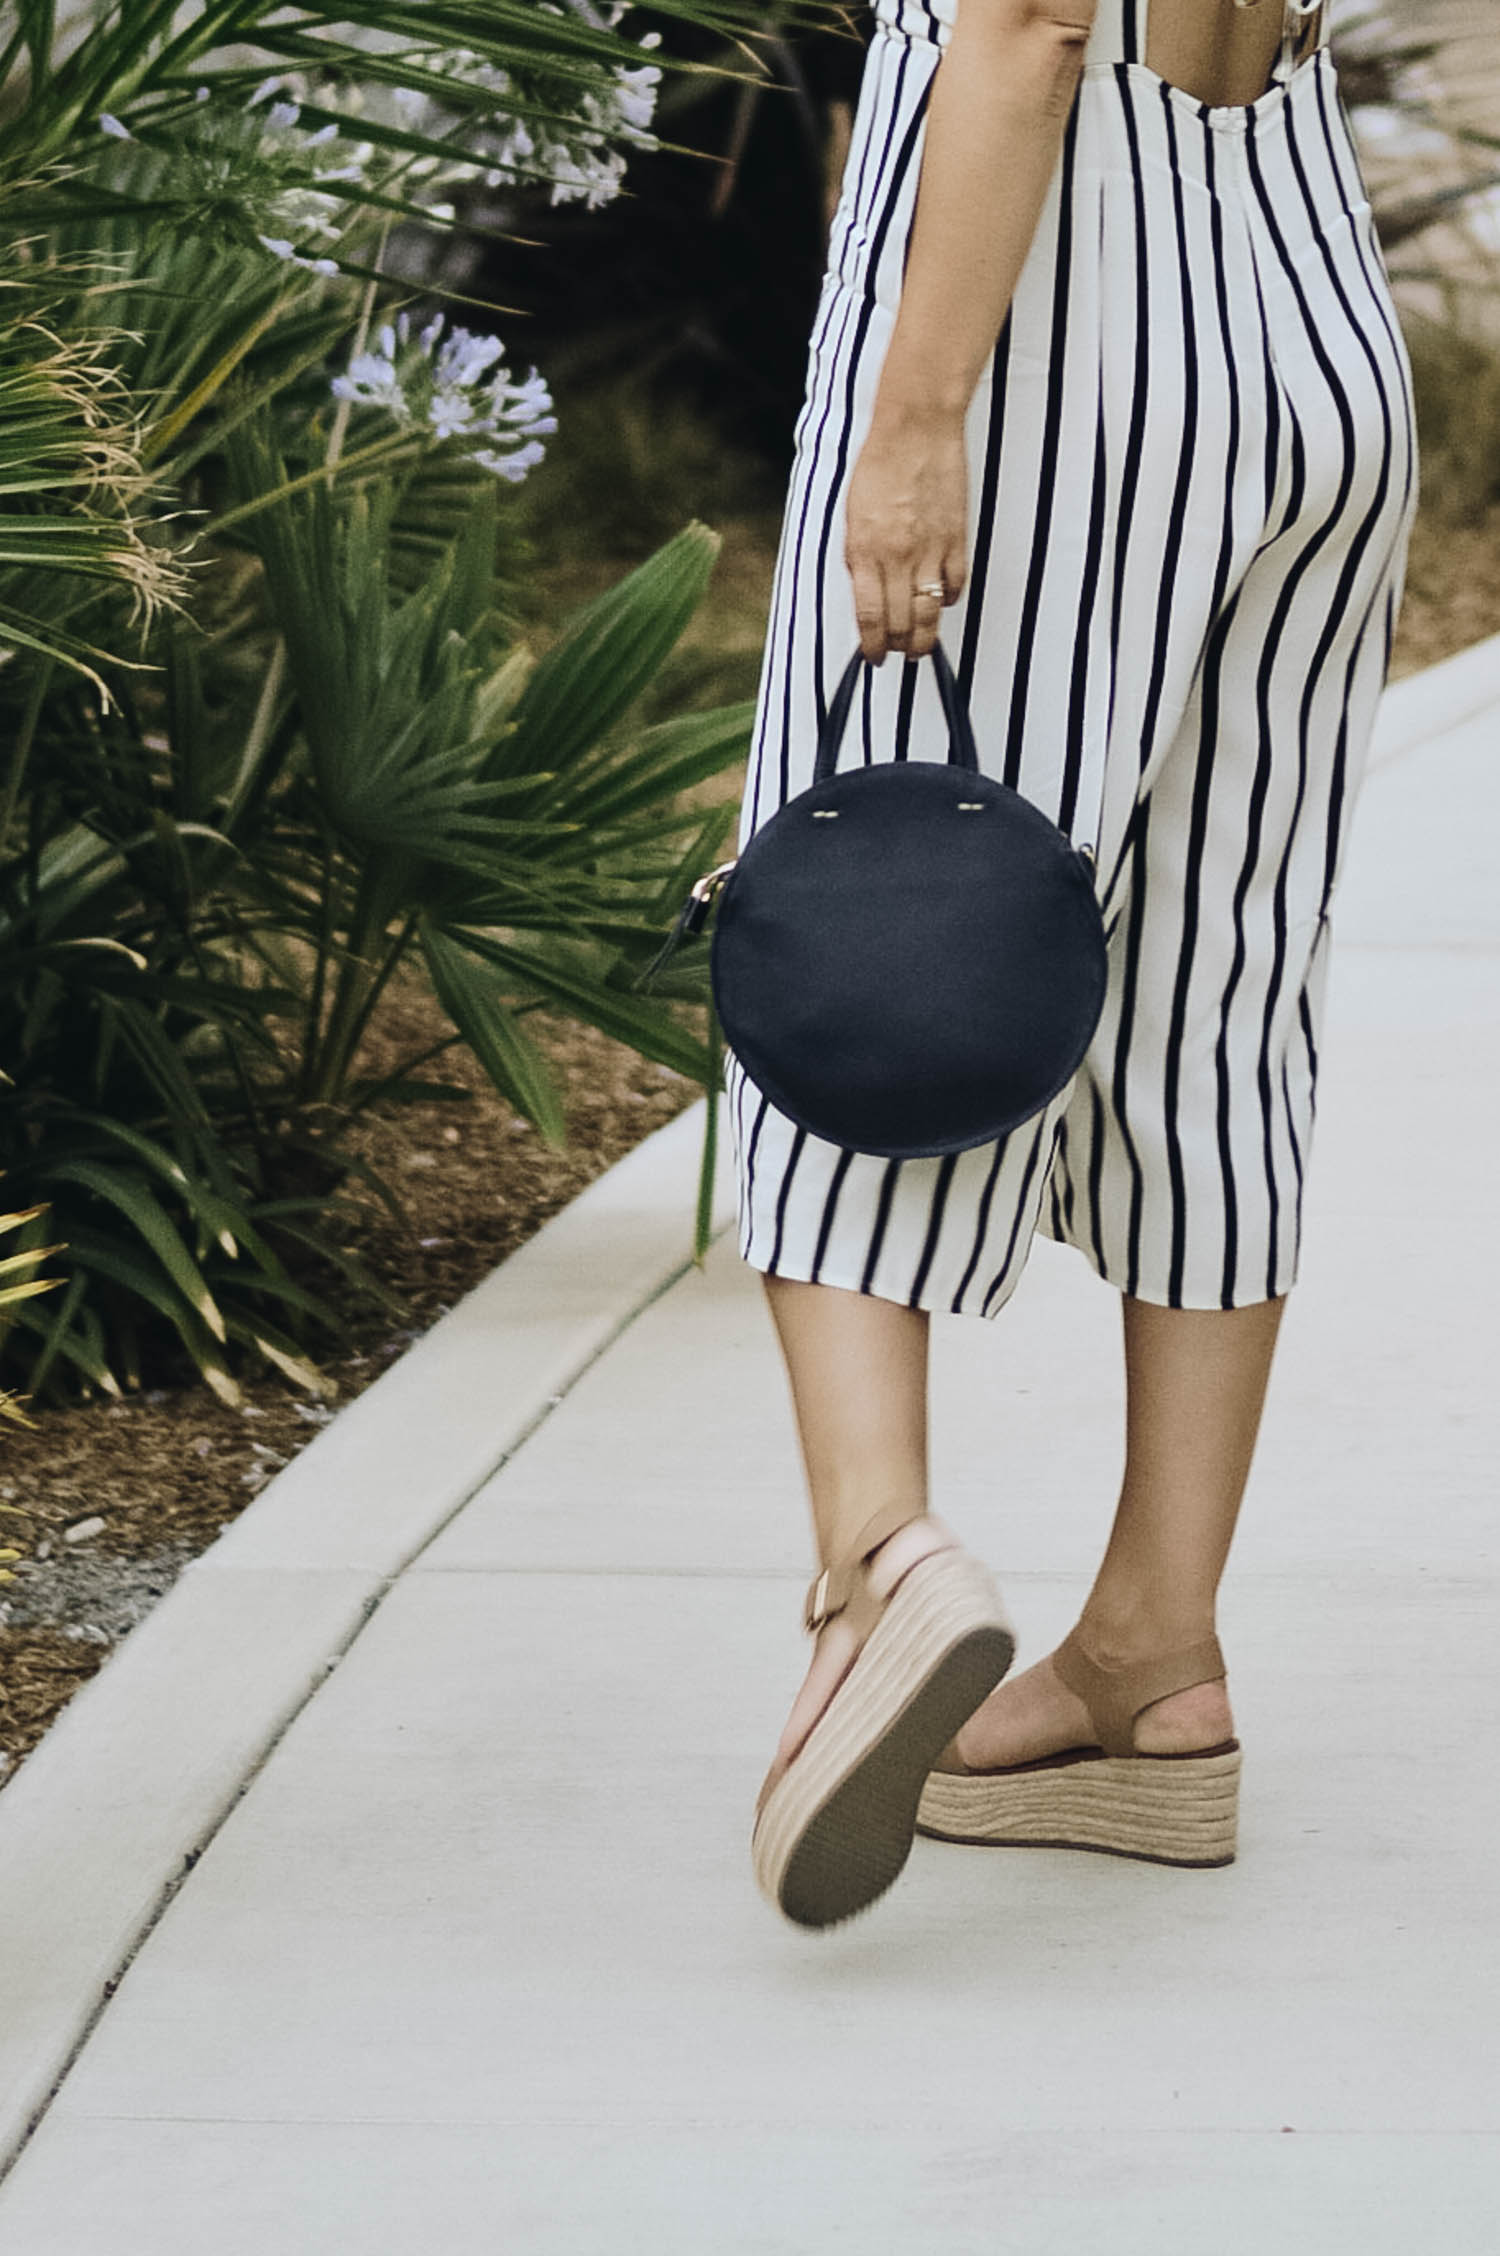 End of Season Style, How to Dress the Part | Striped Jumpsuit, Round Bag via. www.birdieshoots.com